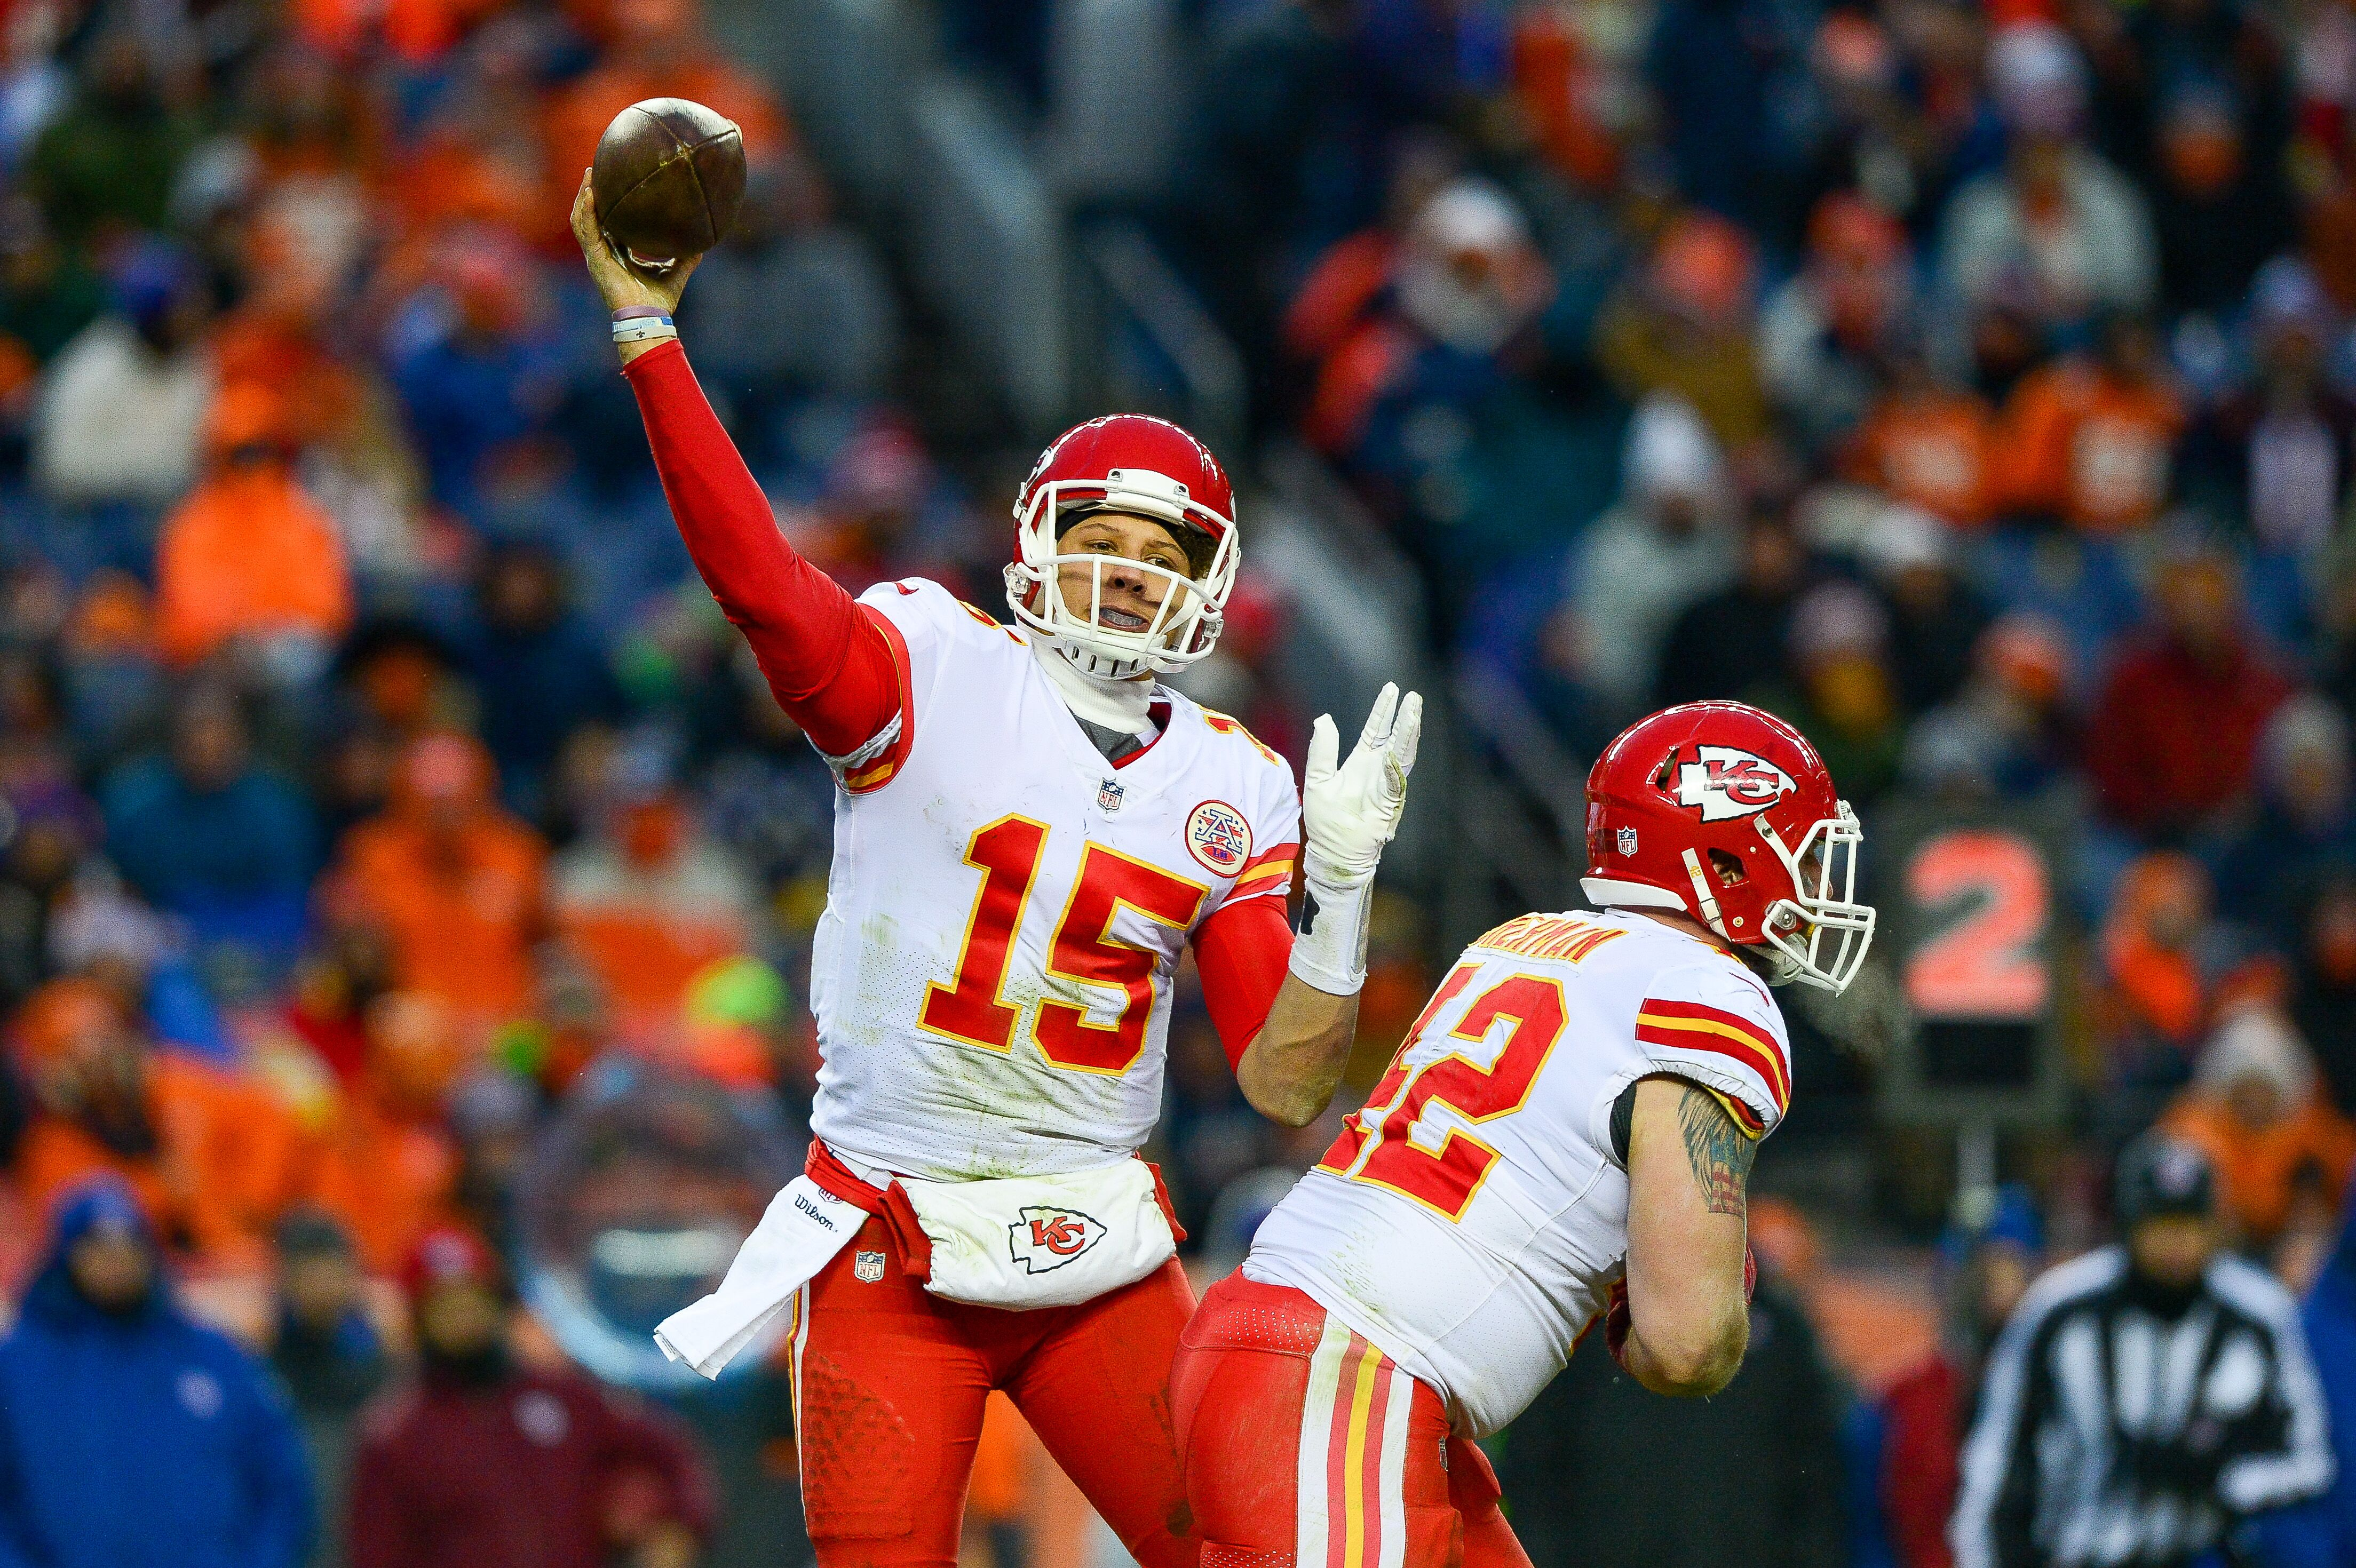 Chiefs: Kansas City Chiefs Might Be Most Intriguing NFL Future Bet